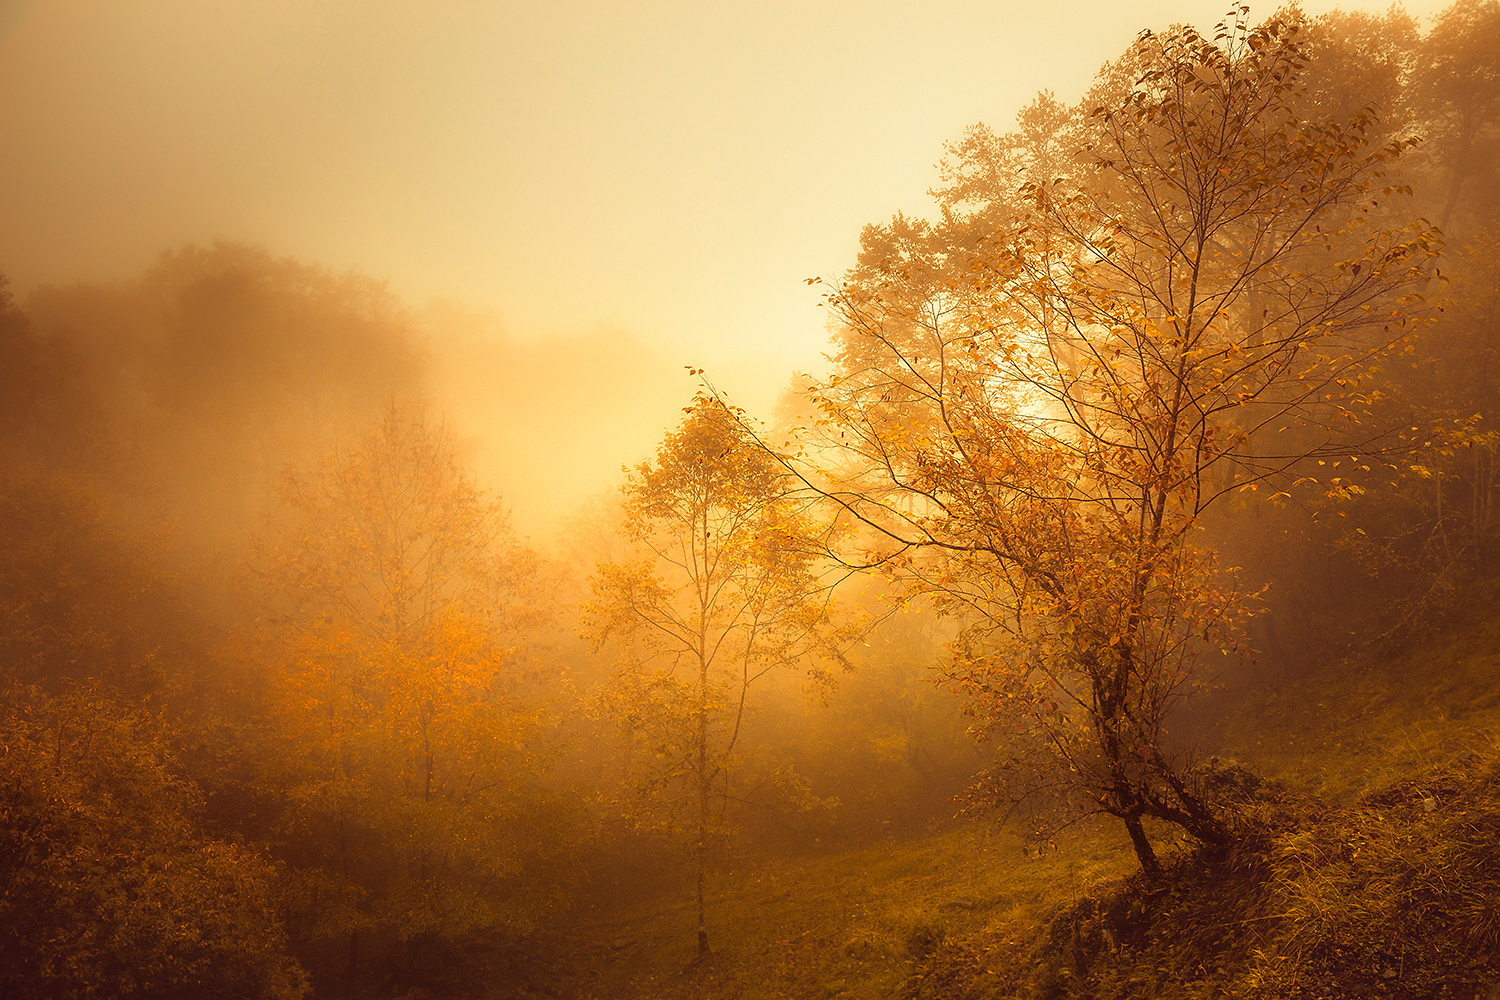 Captivating Images of Different Seasons Worldwide